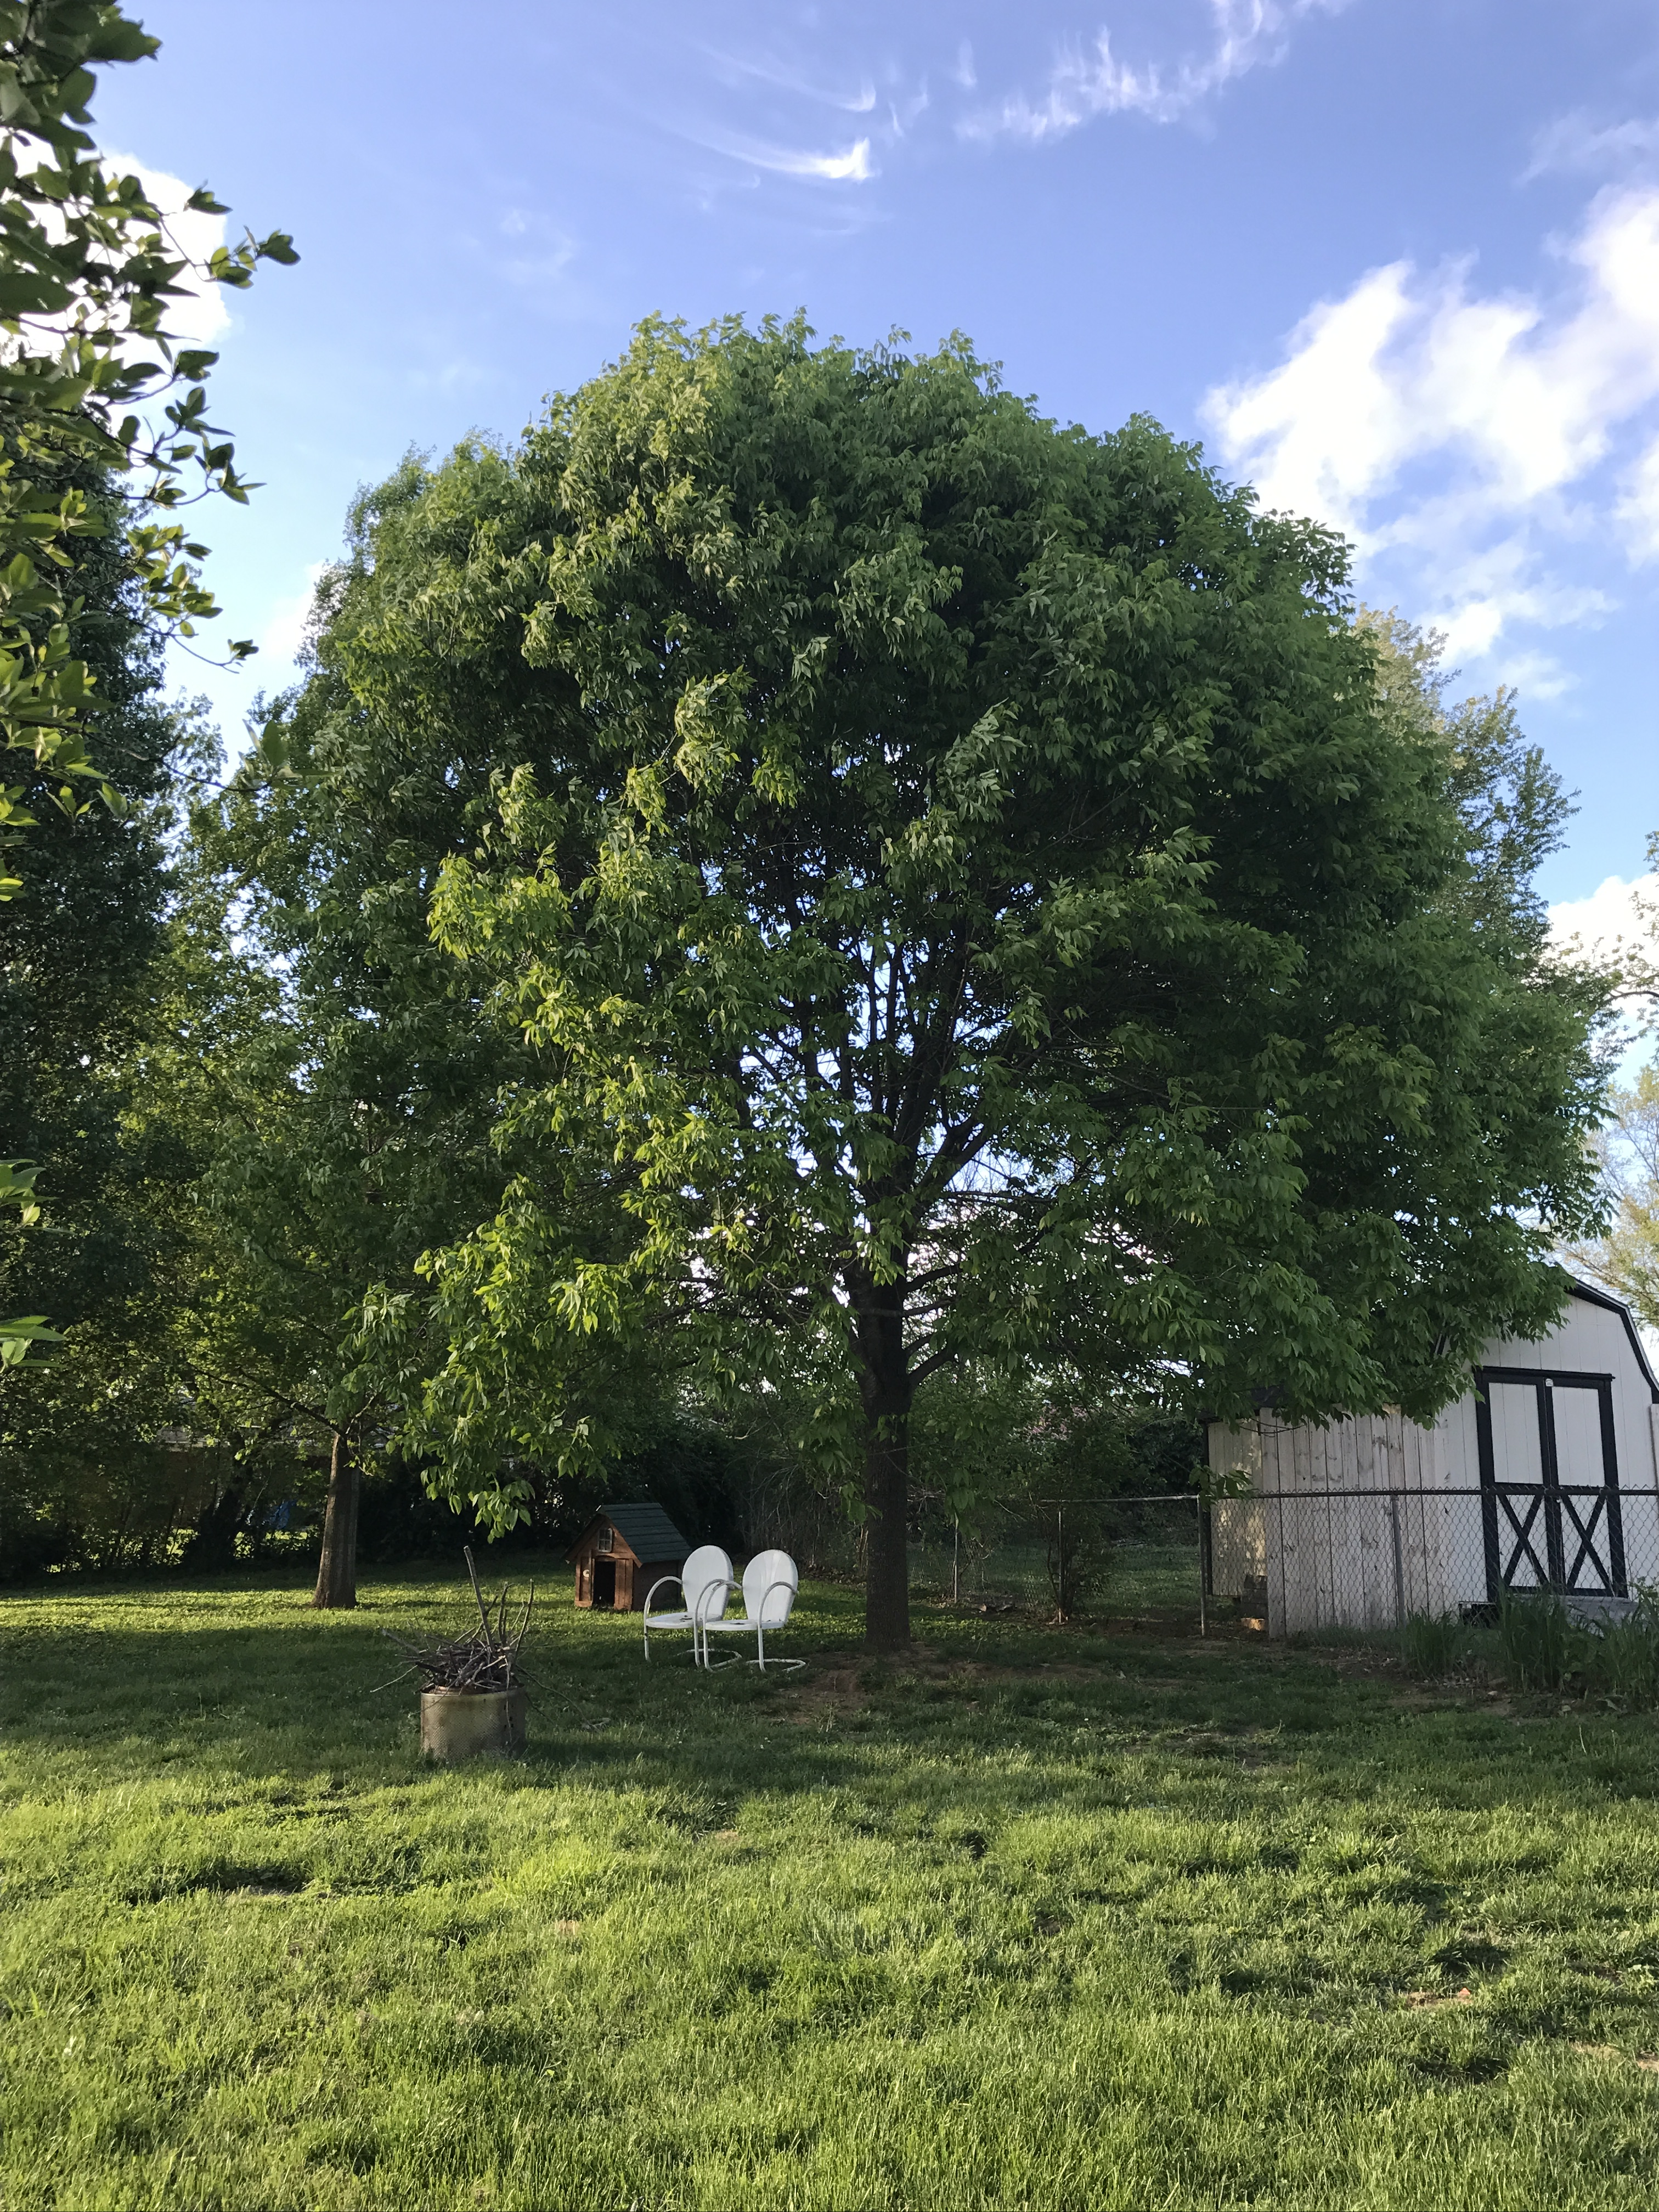 Saving your ash tree from the Emerald Ash Borer is still possible